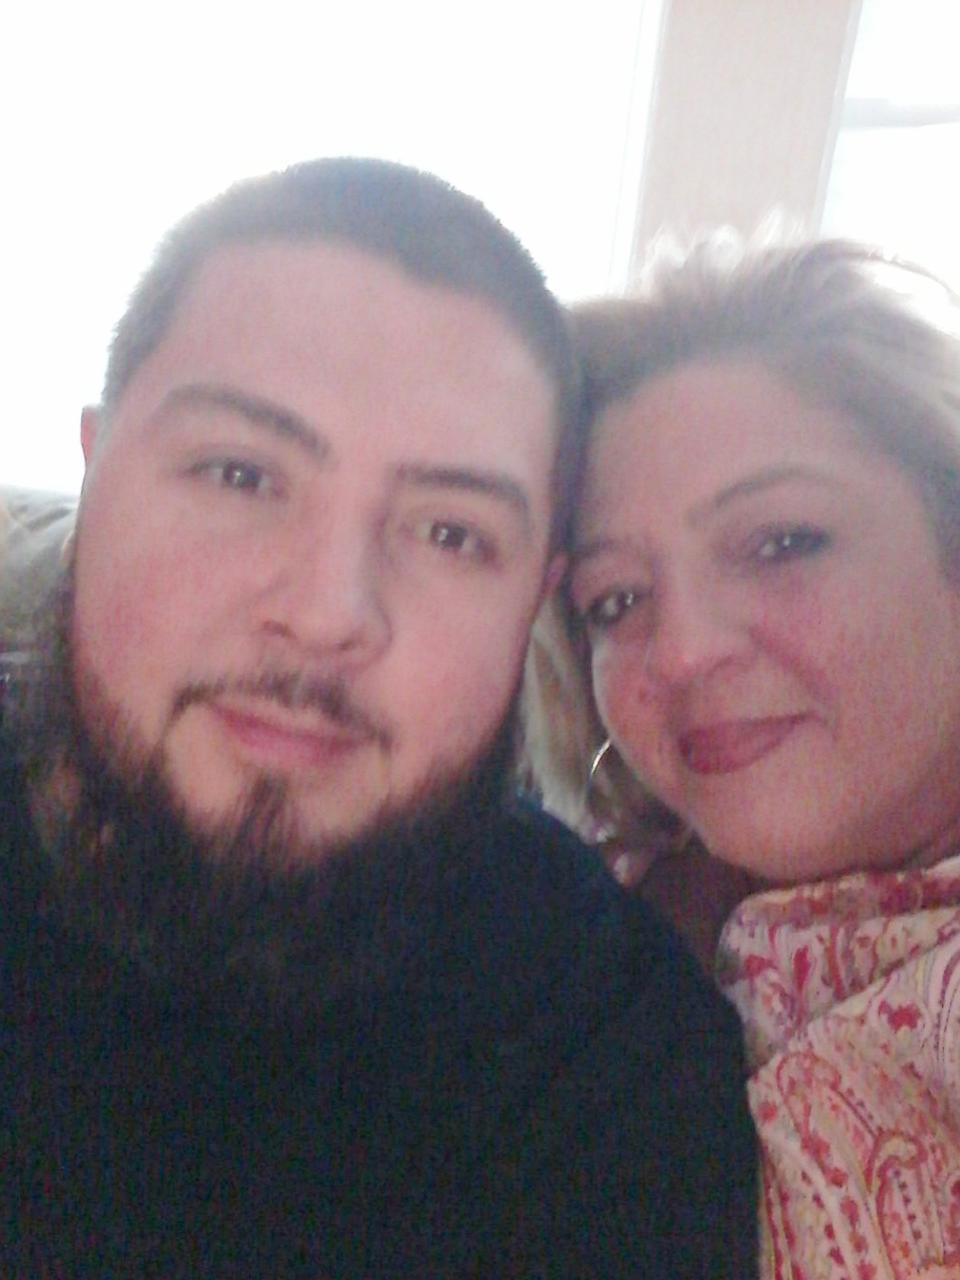 Noel Vasquez and his mother, Madeline Bermudez, pose for a selfie.